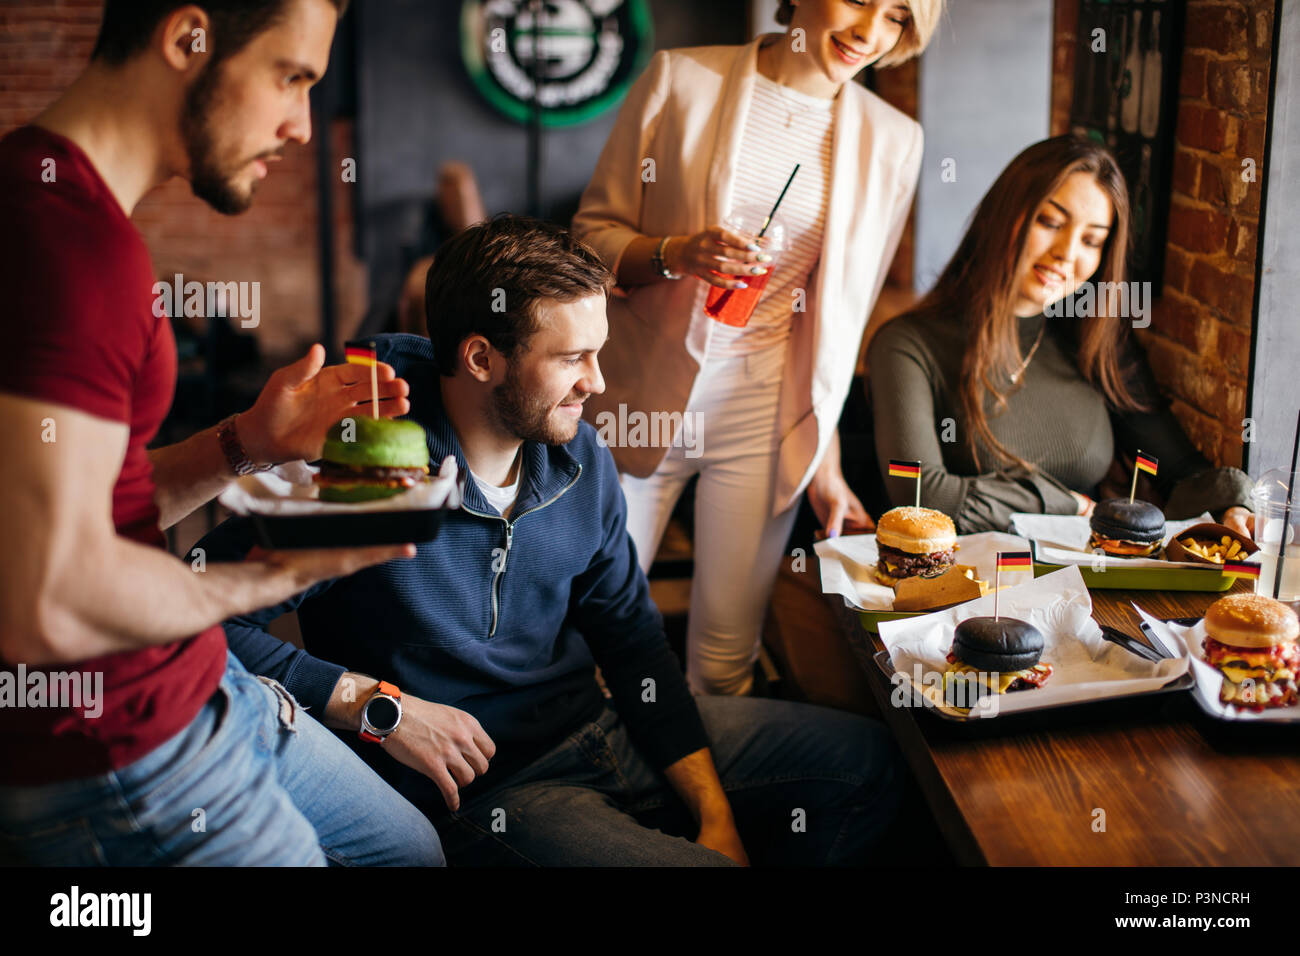 Polite young waiter bringing ordered burgers to guests at restaurant - Stock Image